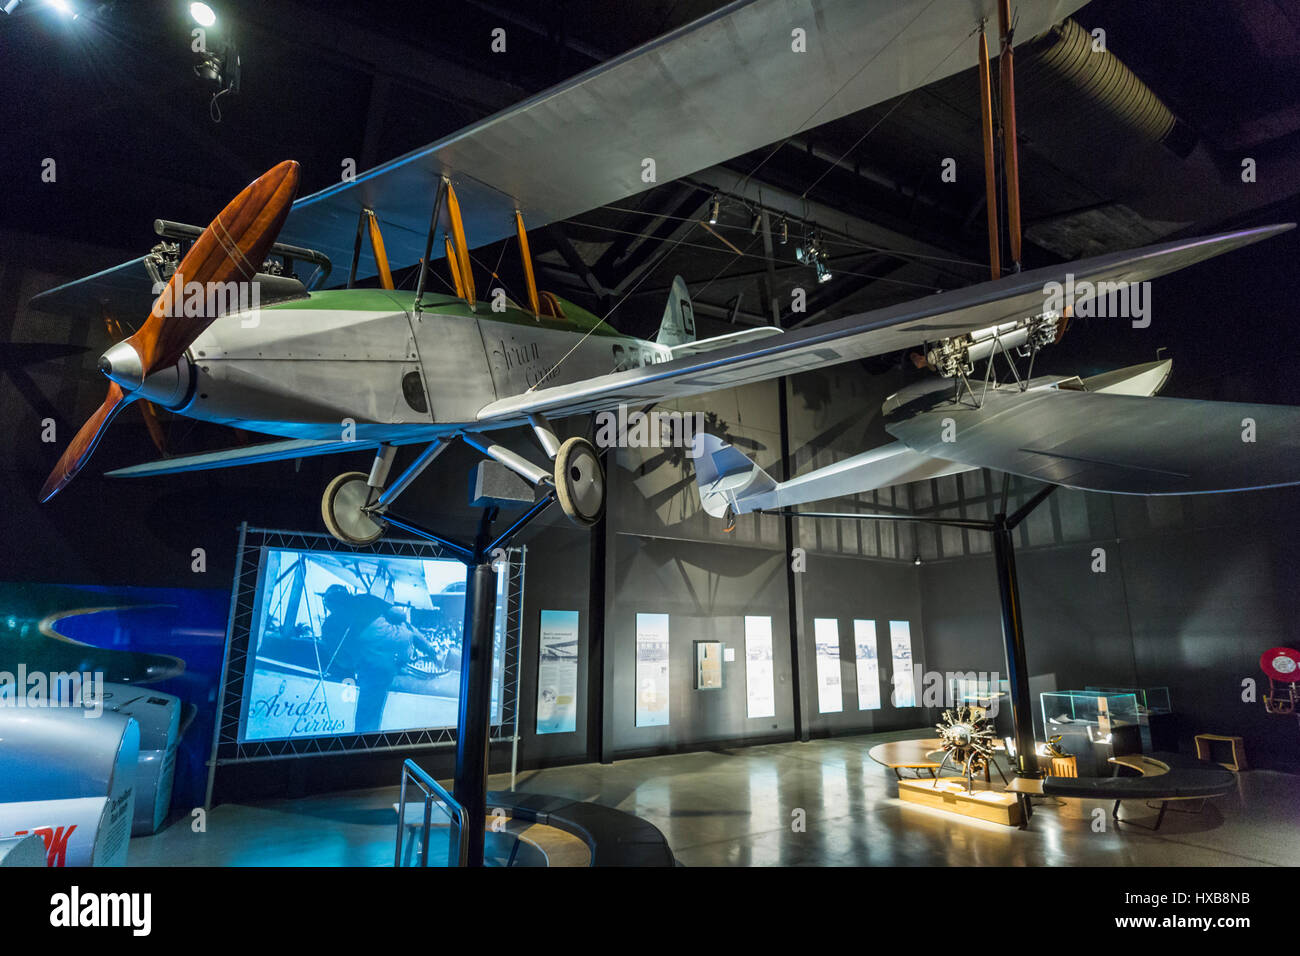 Replica aircraft including the Avro Avian and interactive exhibits inside the Hinkler Hall of Aviation.  Bundaberg, - Stock Image